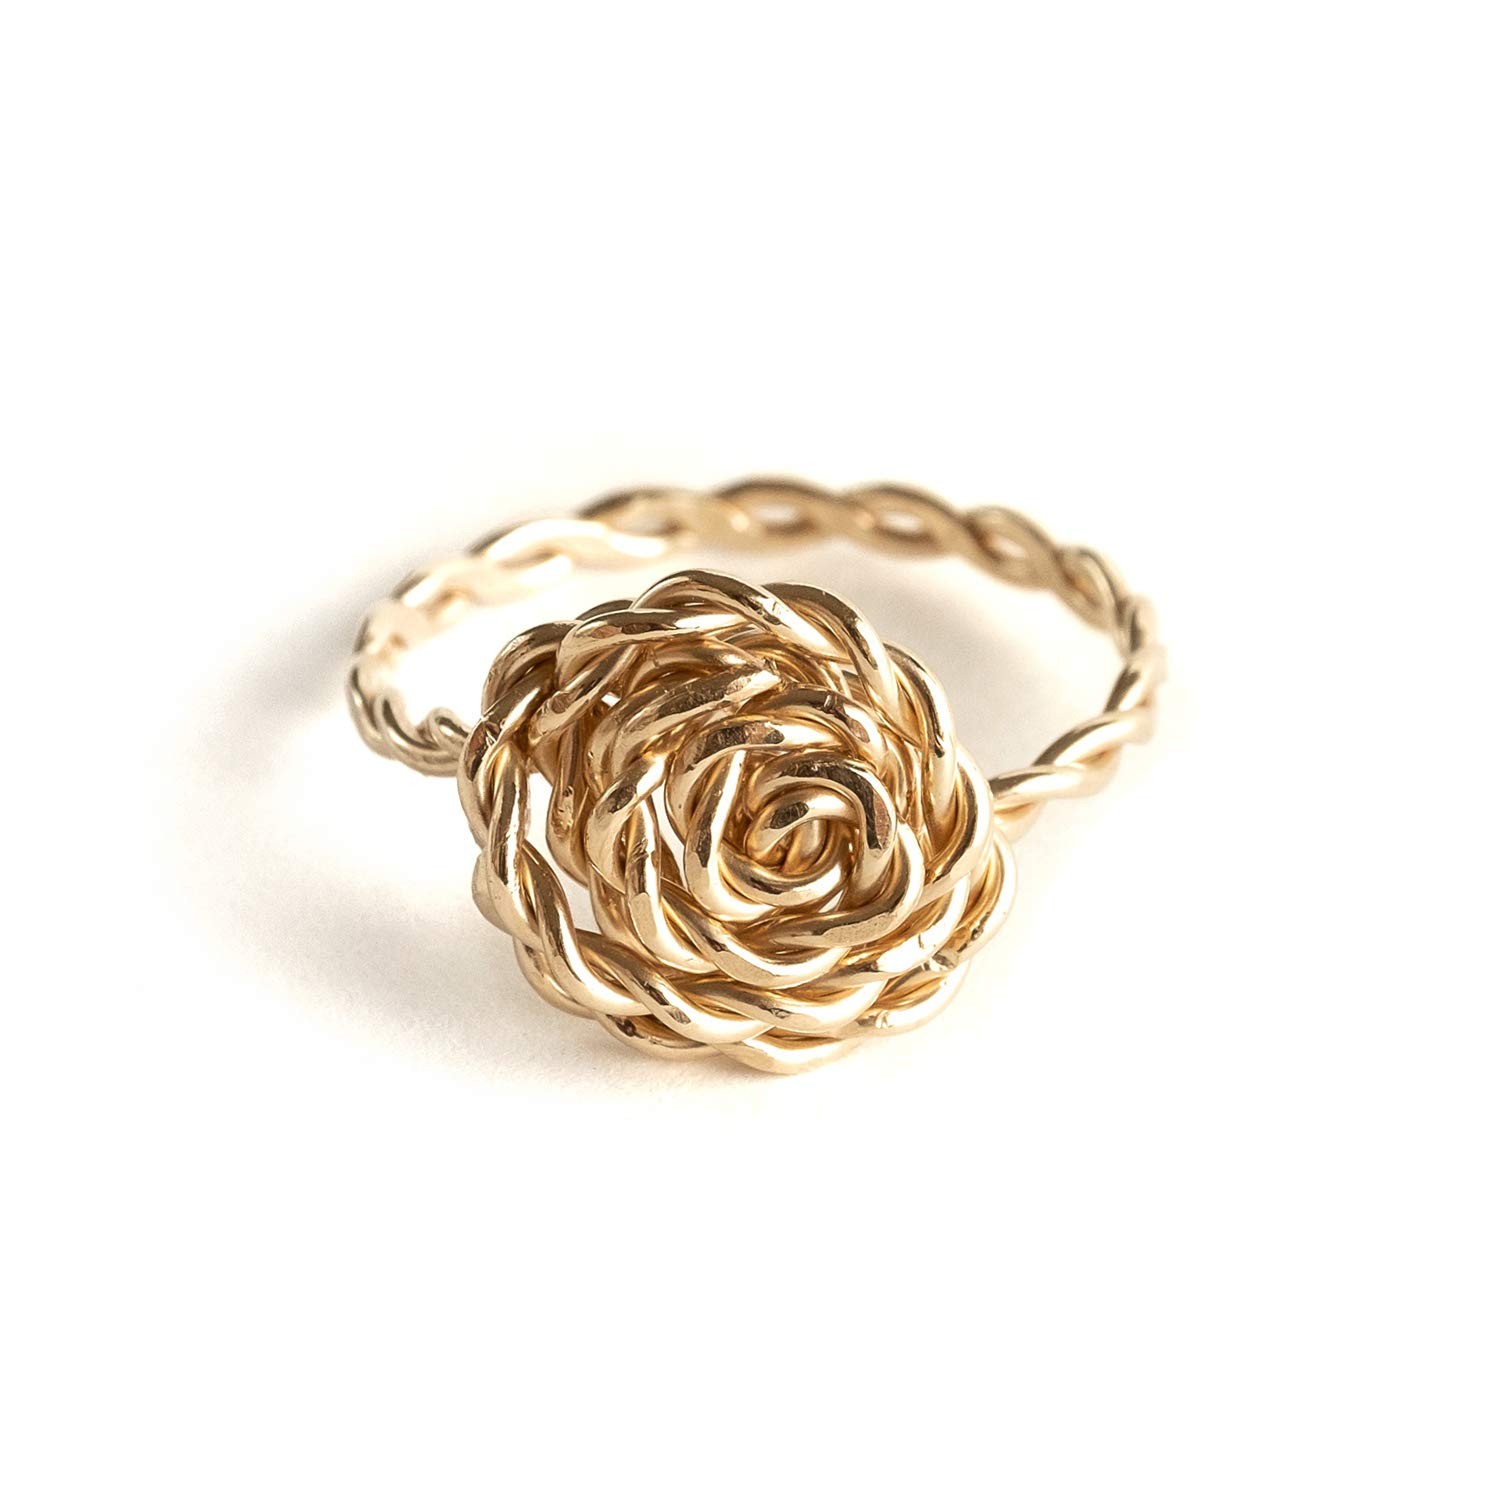 14k Rose Gold Filled Sterling Silver Wire Wrapped Gemstone Ring Gemstone Jewelry,Bohemian,Hippie 14k Gold Filled